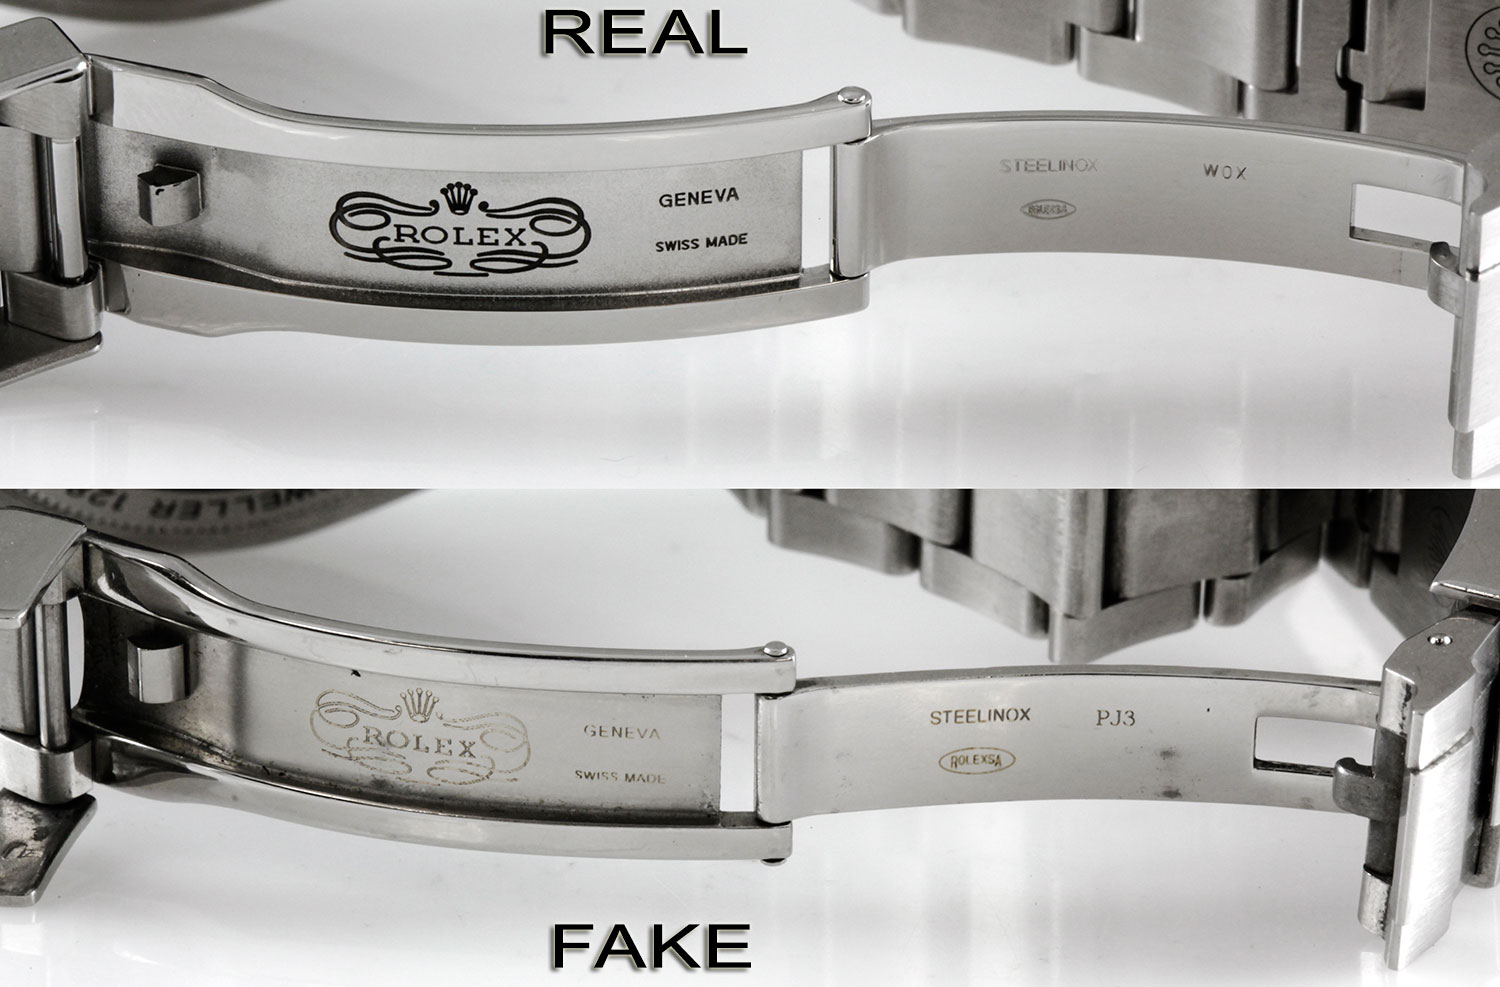 How to Spot a Fake Rolex Band